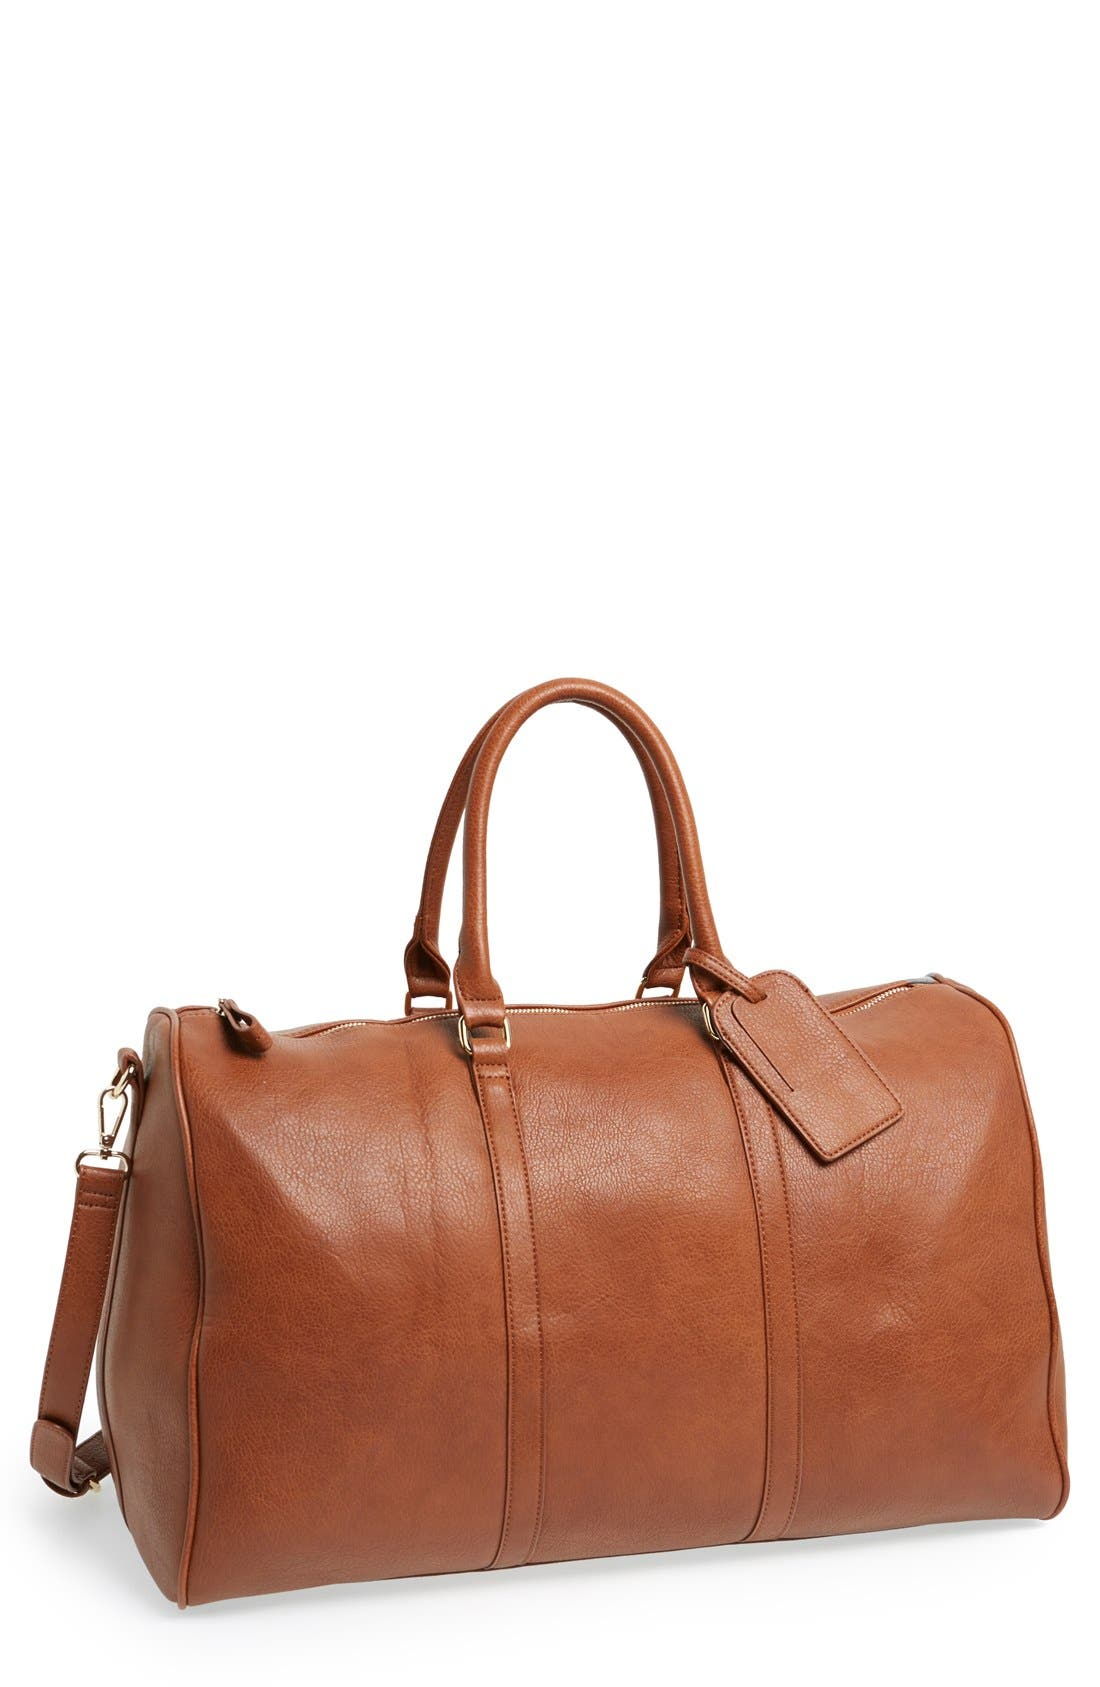 Main Image - Sole Society 'Lacie' Faux Leather Duffel Bag